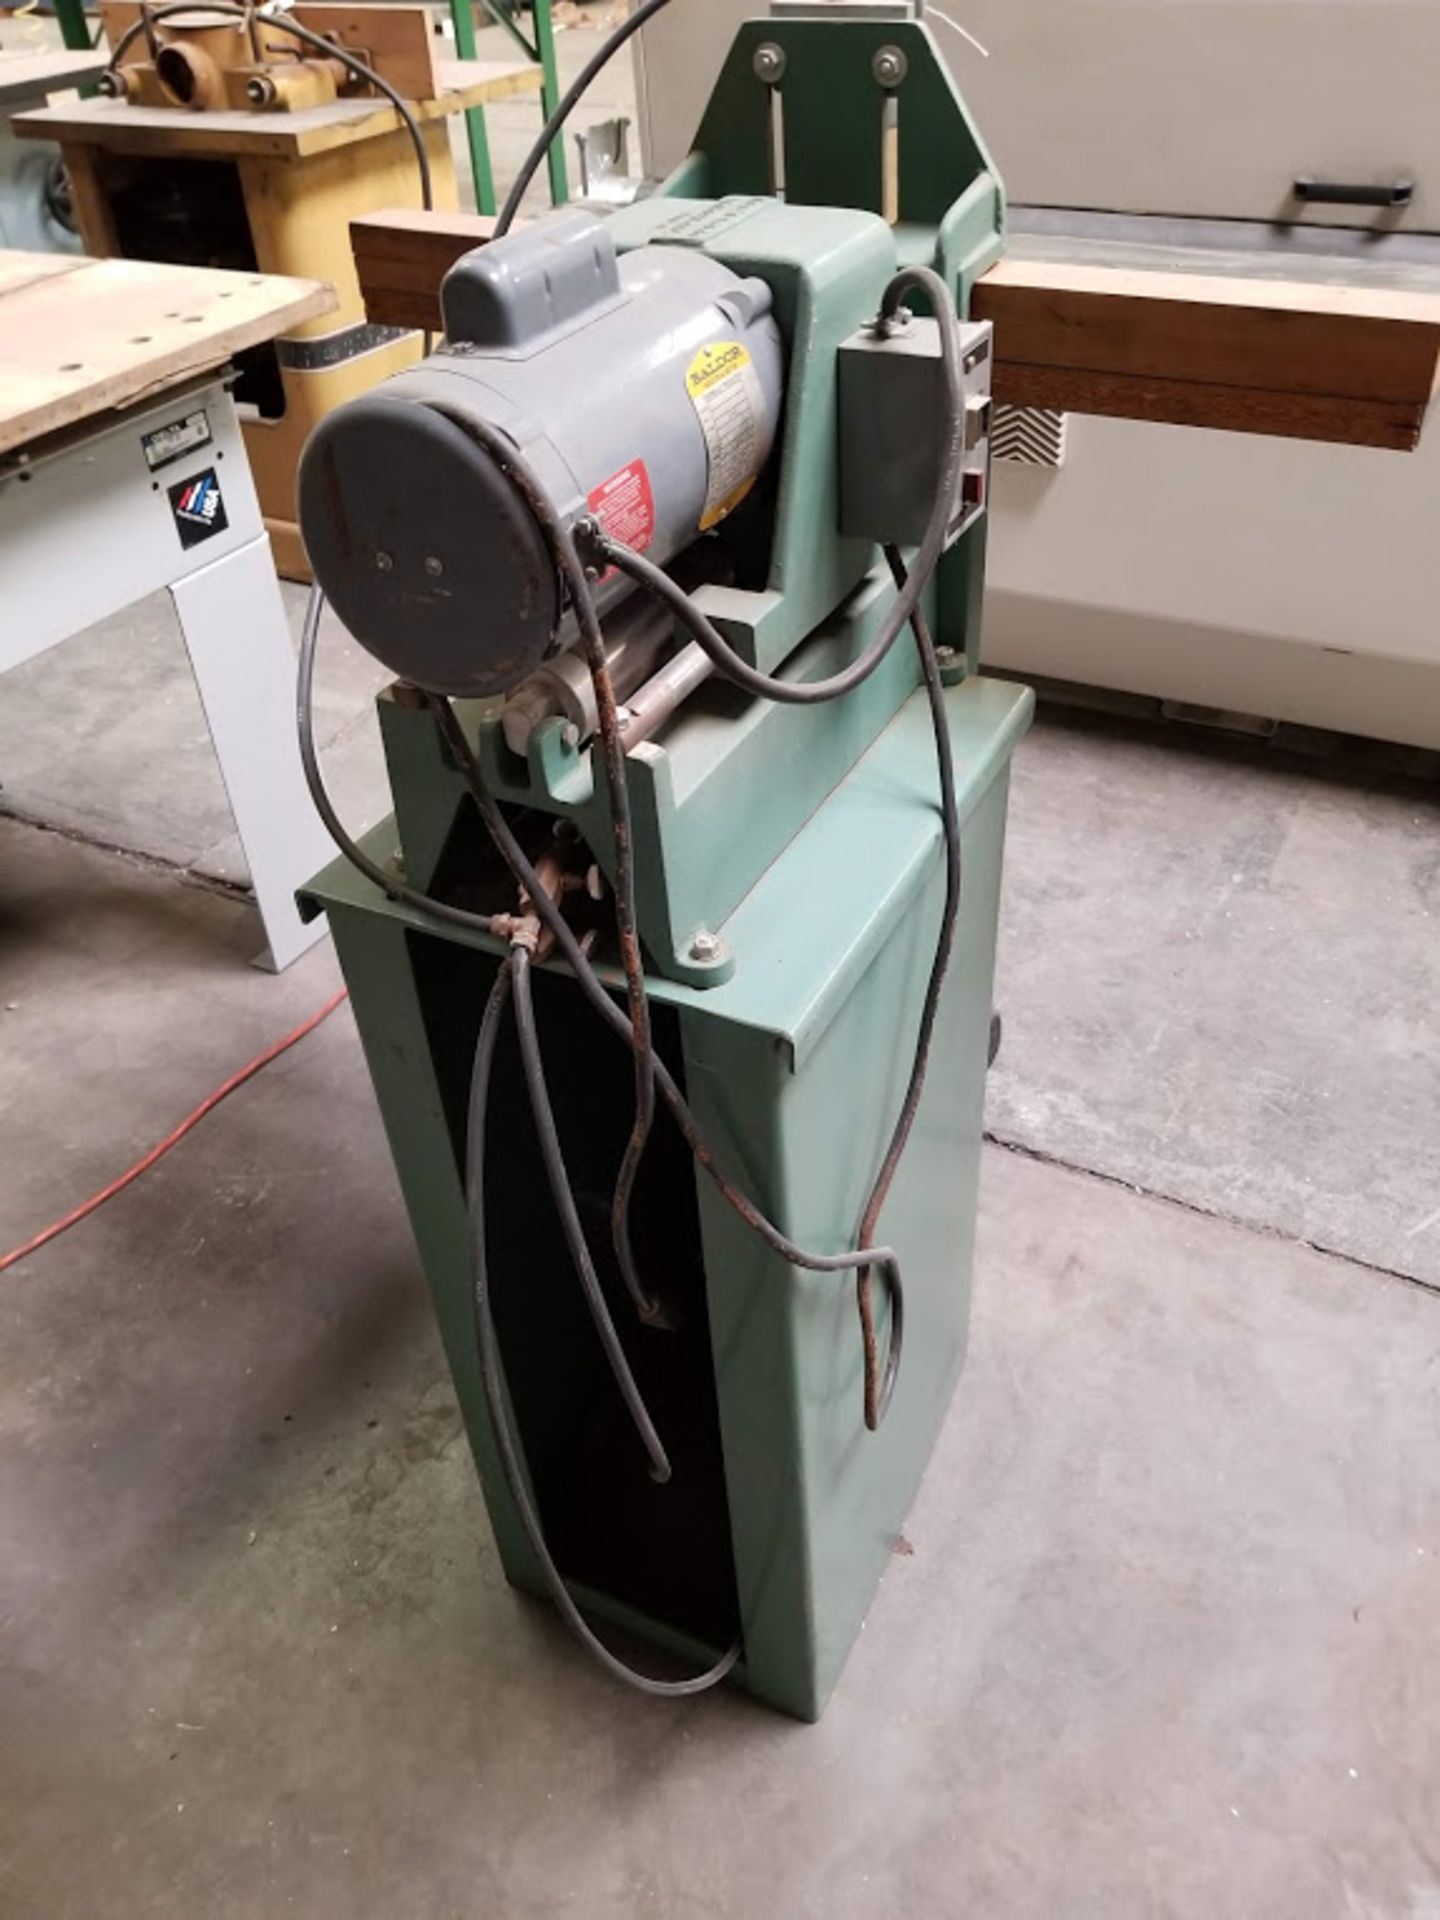 Lot 10 - Ritter 1 Spindle Boring Machine, Pneumatic Foot Pedal, Baldor 3/4 HP 115/230 volt 1 phase